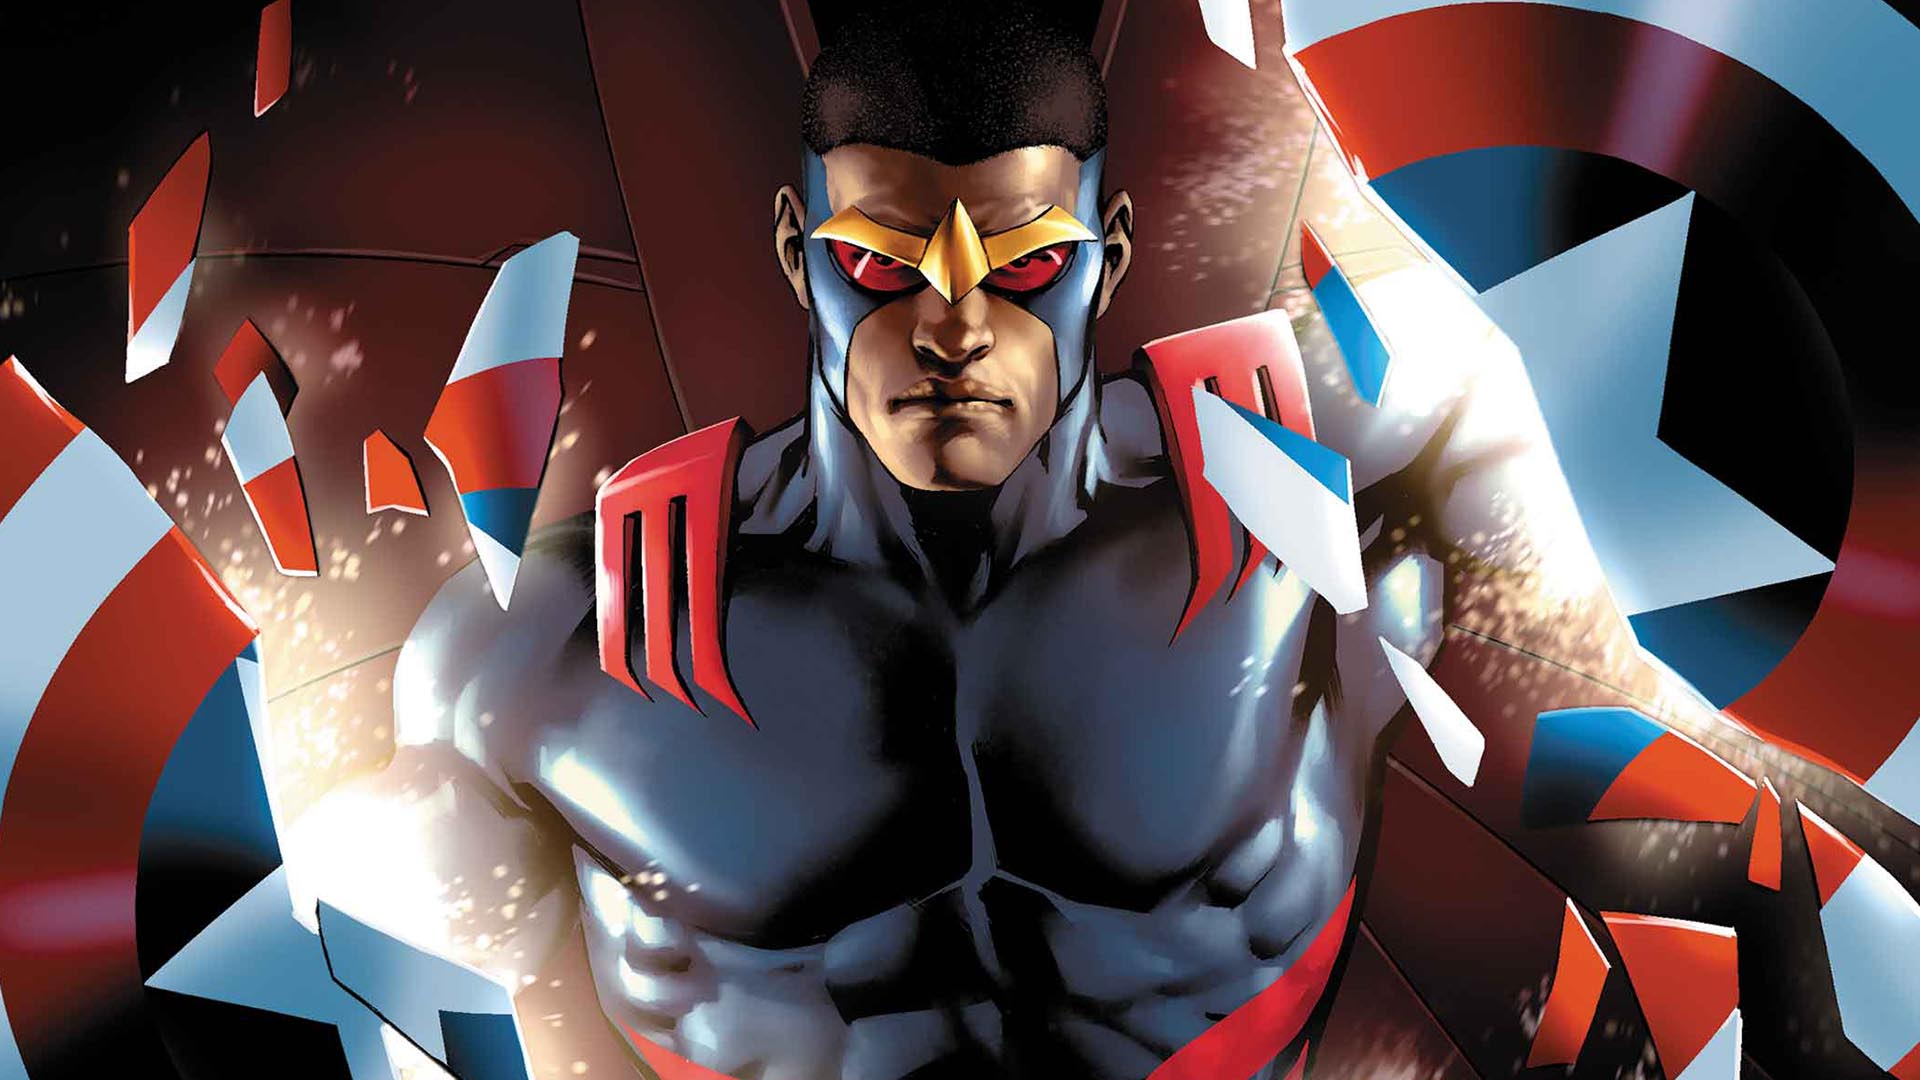 Simple Wallpaper Marvel Falcon - marvel_comics_falcon_issue_01  You Should Have_807753.jpg